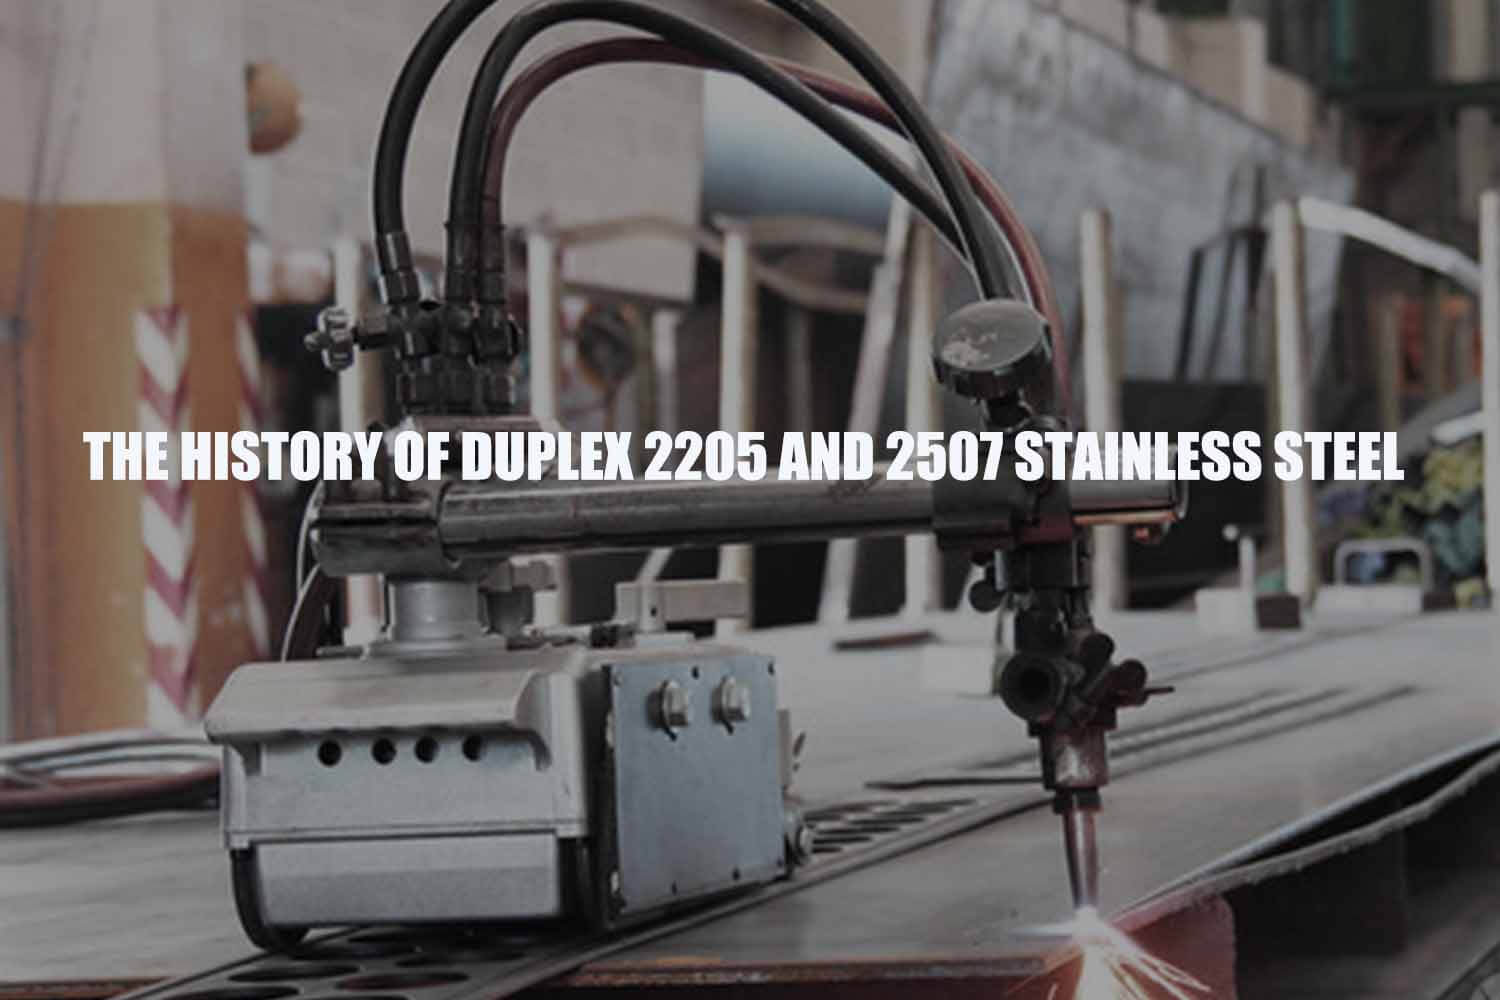 history-duplex-2205-and-2507-stainless-steel